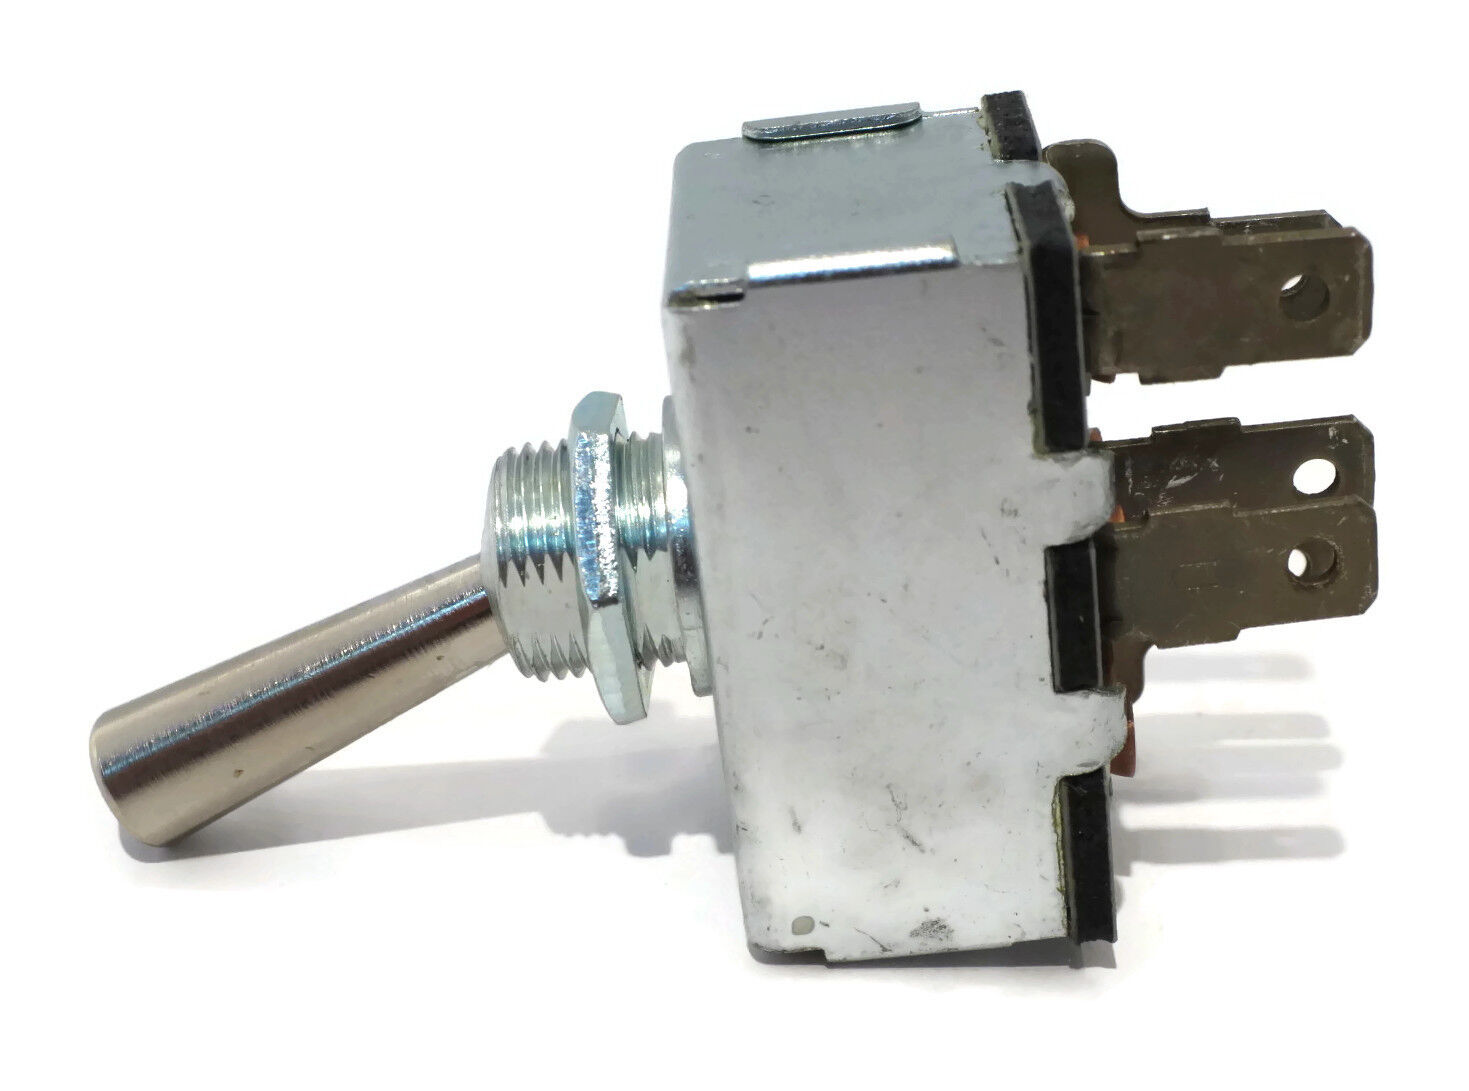 PTO SWITCH fits Simplicity 1312H 1313H 1316H 1914H 1916H 1918H 1920 1920H 2316H